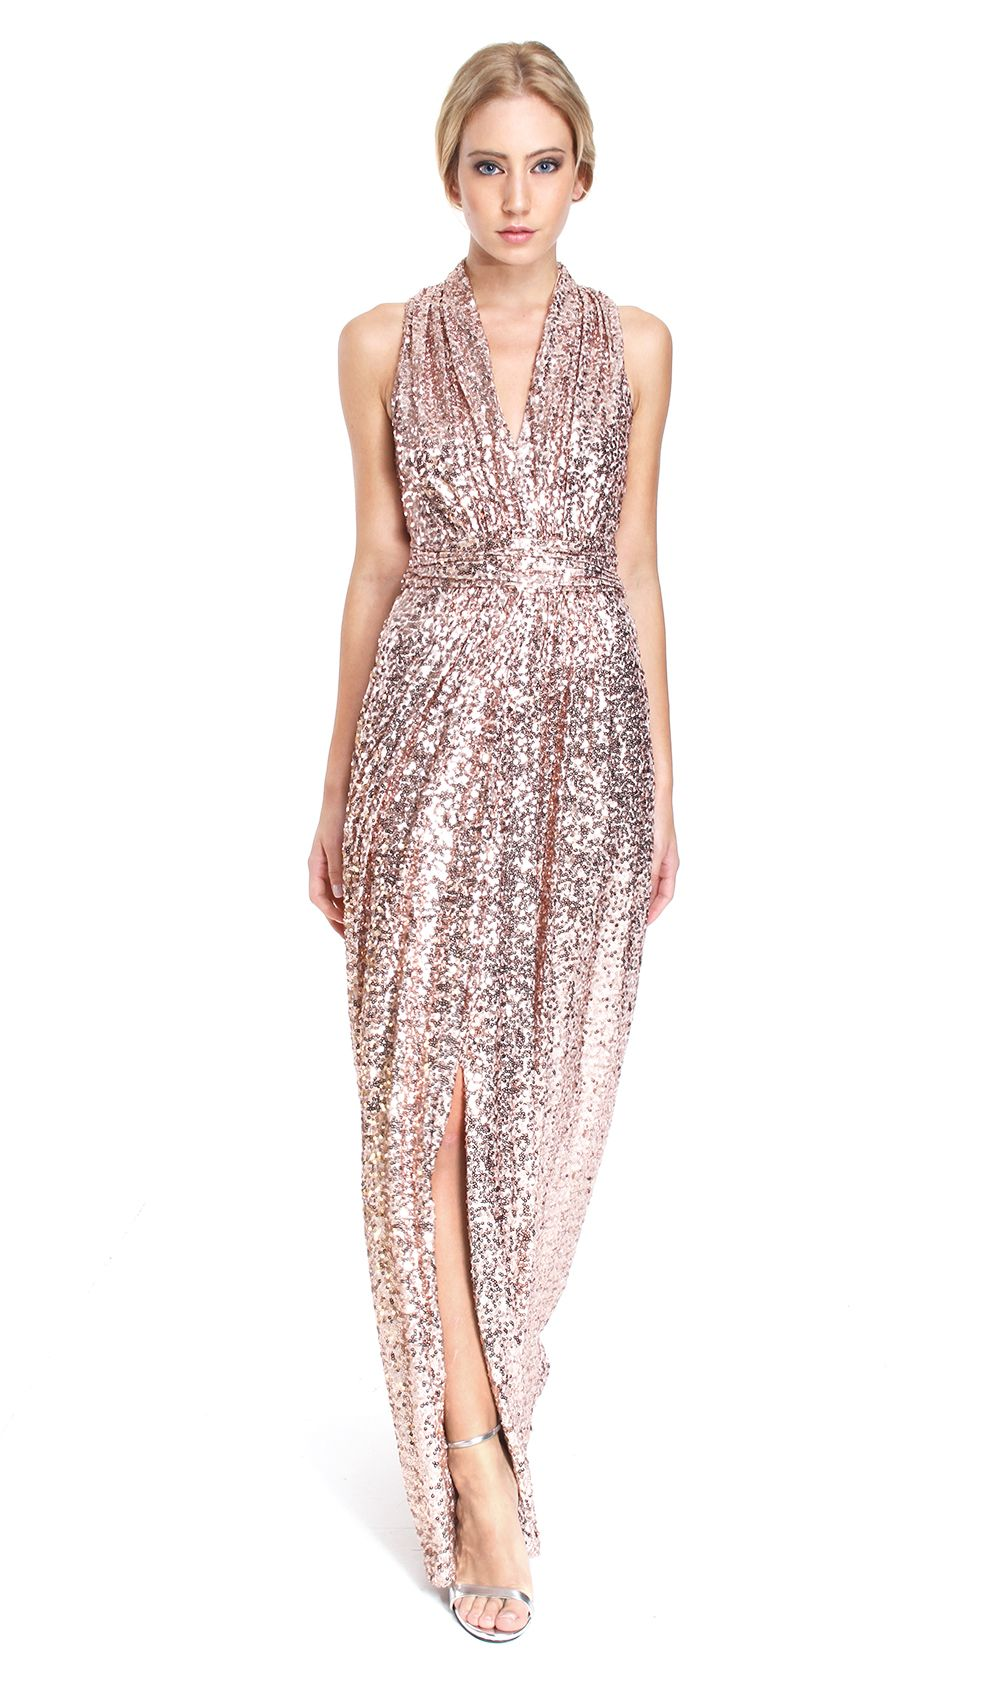 Pink sequined gown hire badgley mischka front pink closet pink sequined gown hire badgley mischka front ombrellifo Images